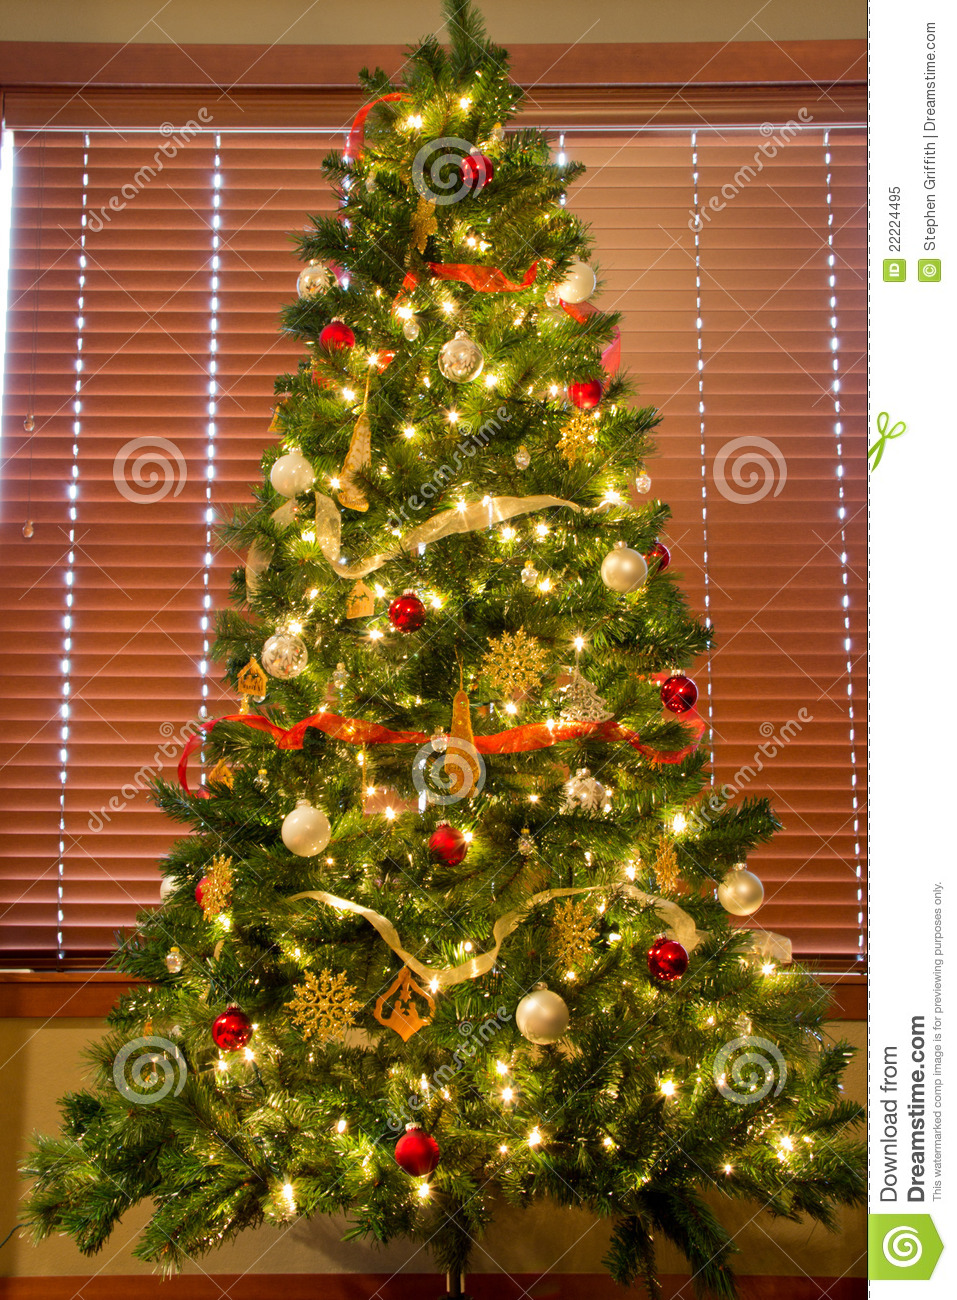 Full Christmas Tree In Front Of Blinds Royalty Free Stock